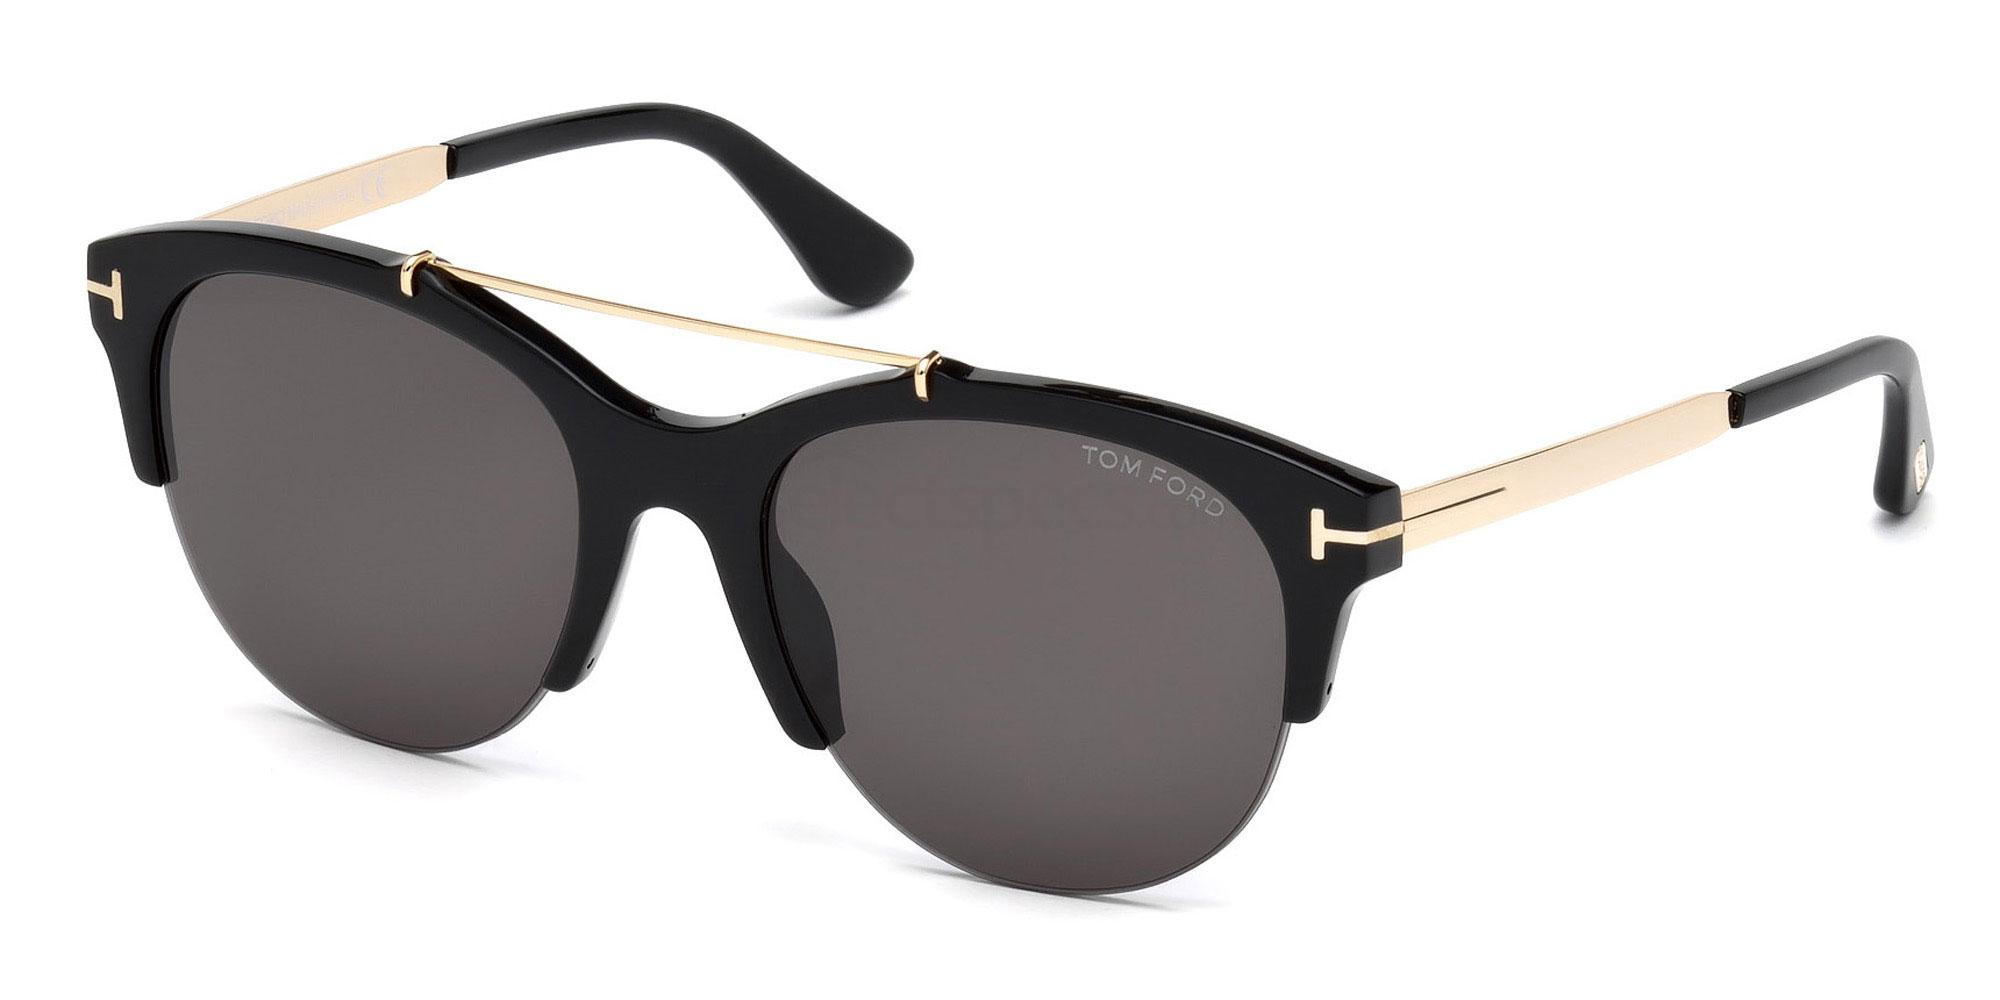 01A FT0517 Sunglasses, Tom Ford